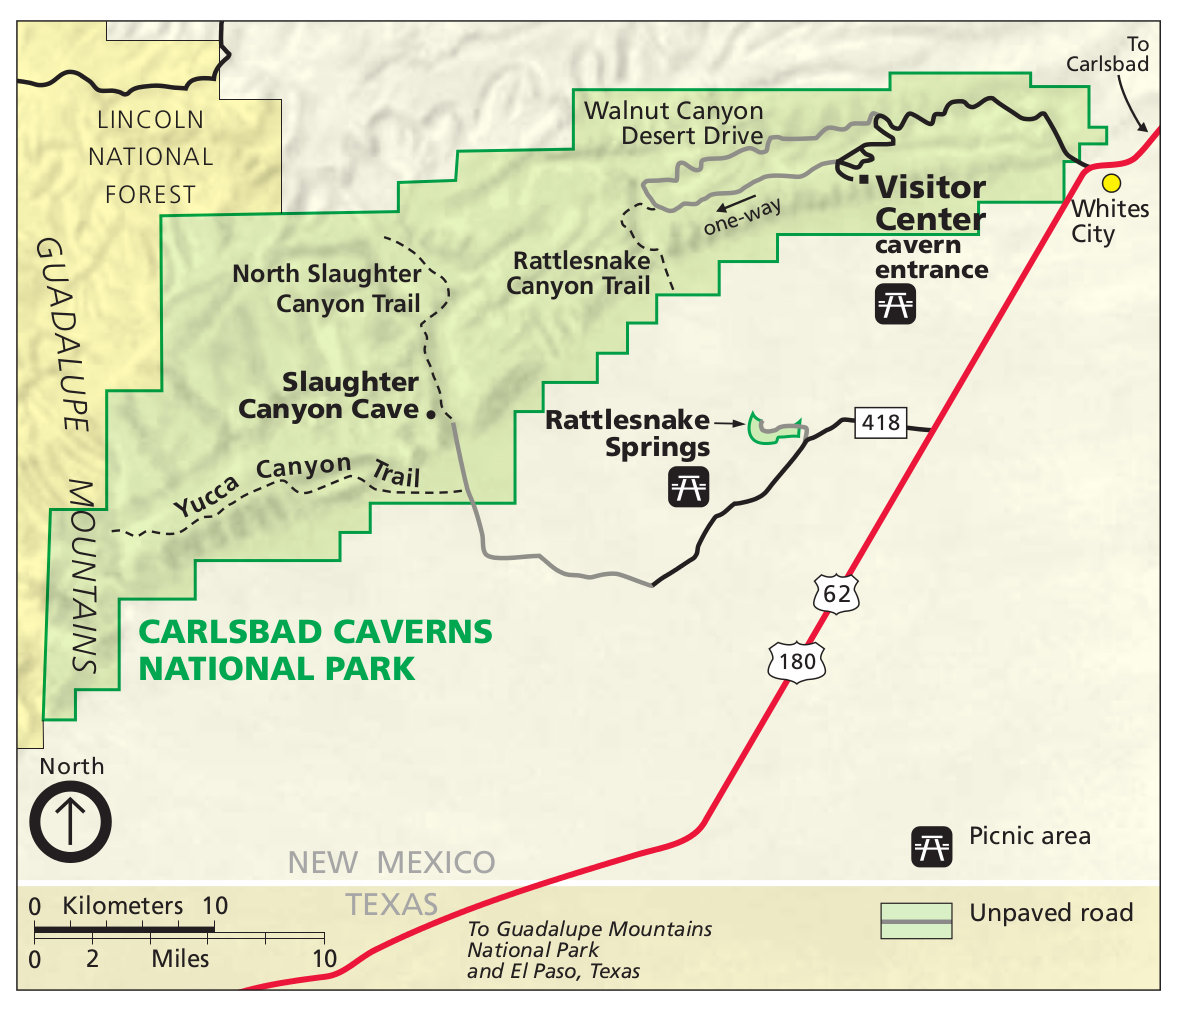 Carlsbad Caverns Maps NPMapscom just free maps period